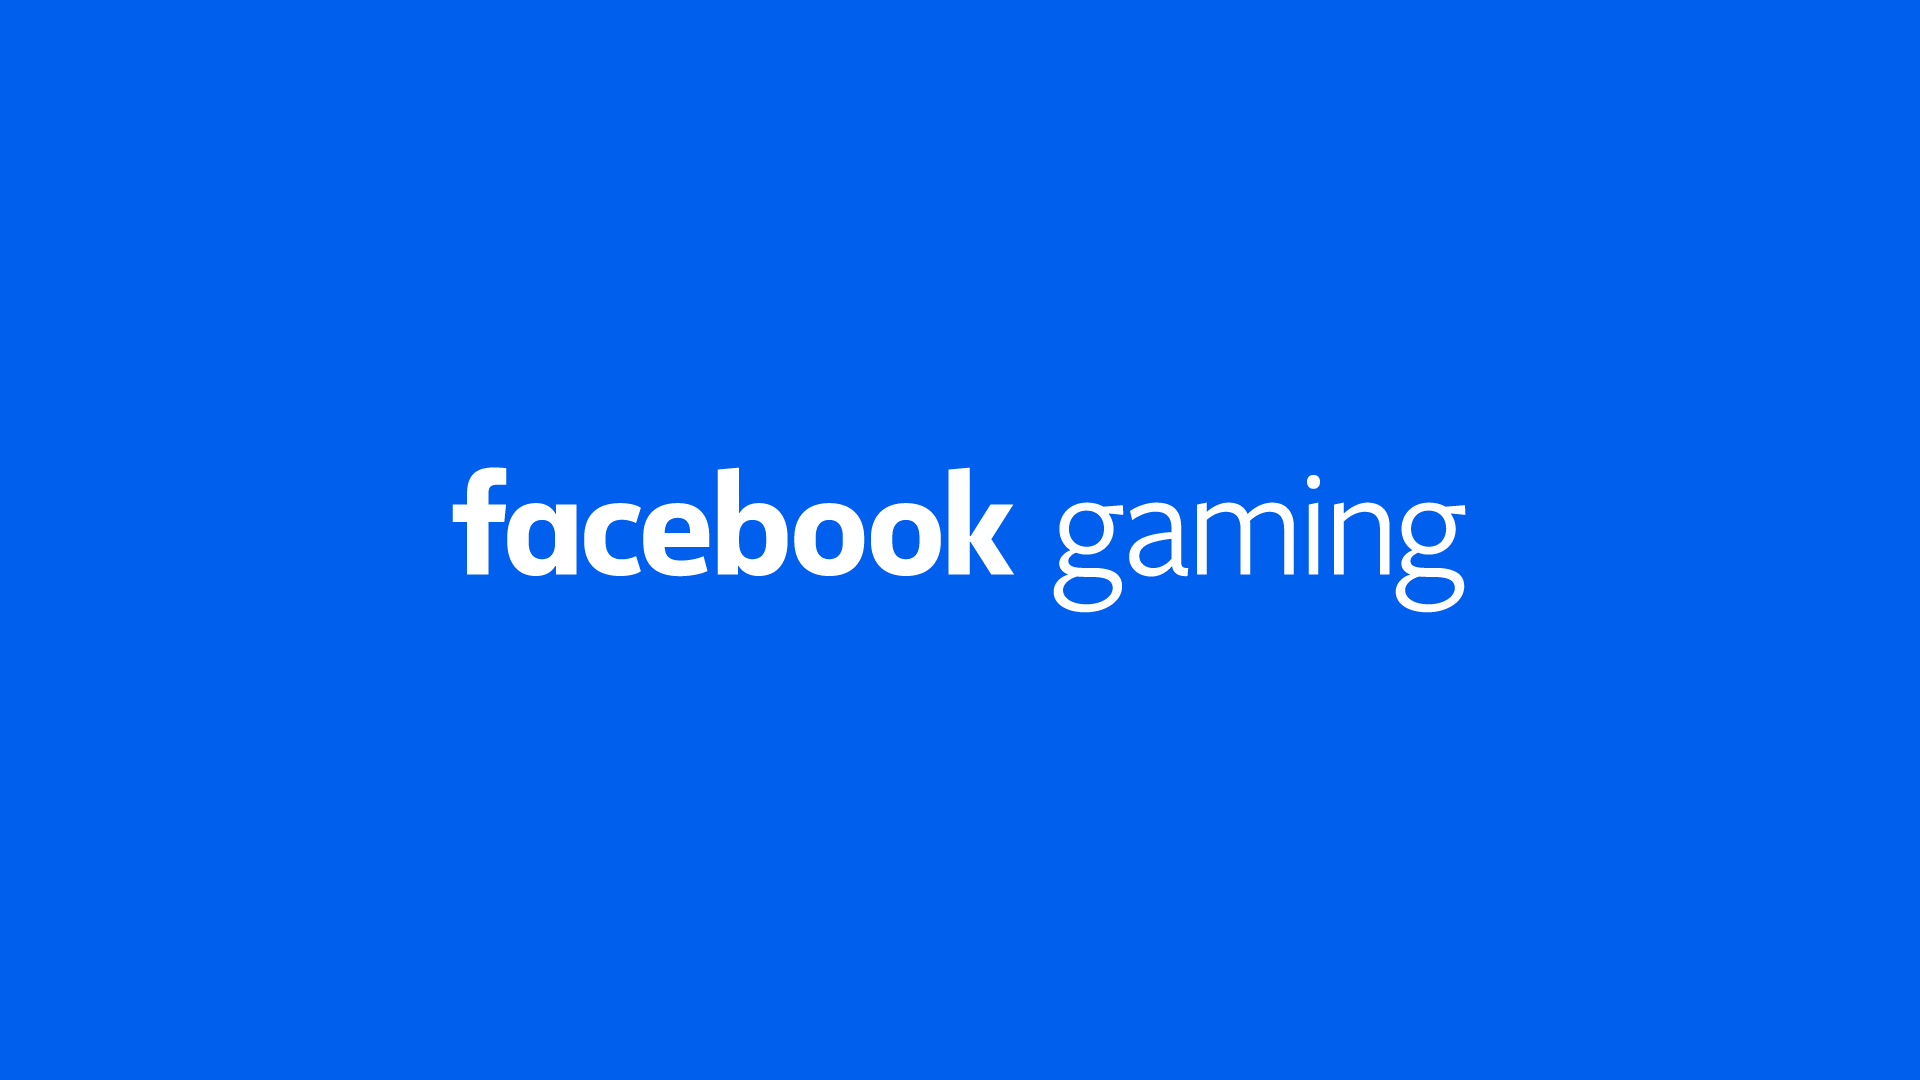 Facebook Gaming App Set to Launch Today to Take on Twitch, YouTube